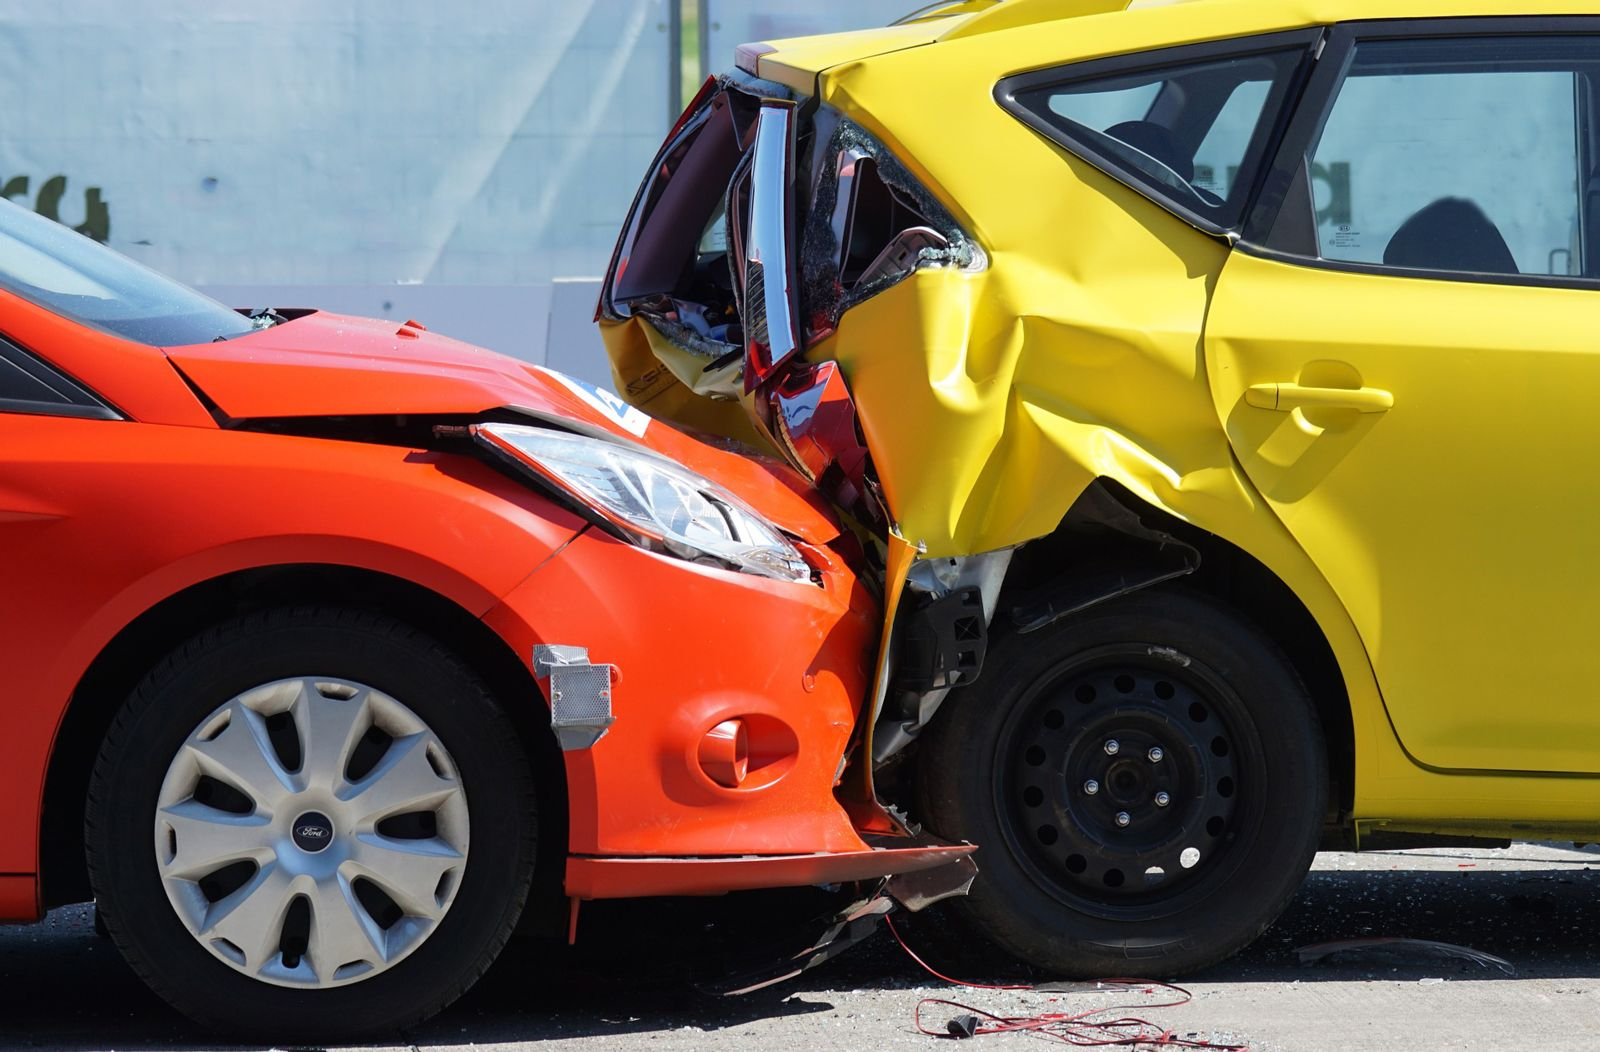 Car rear ended car accident insurance company tactics